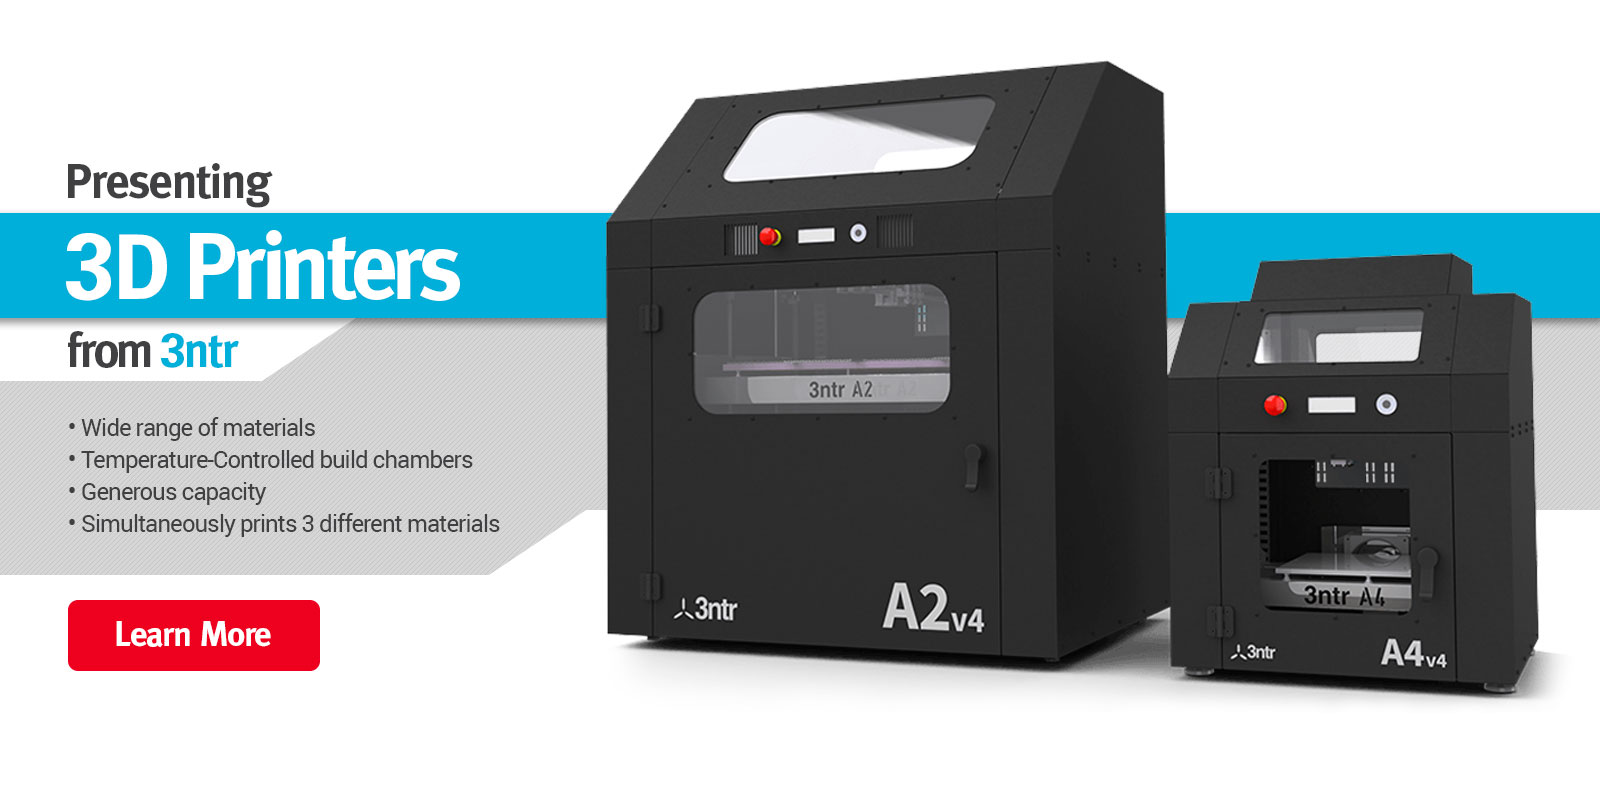 TRAK Presents 3D Printers From 3ntr